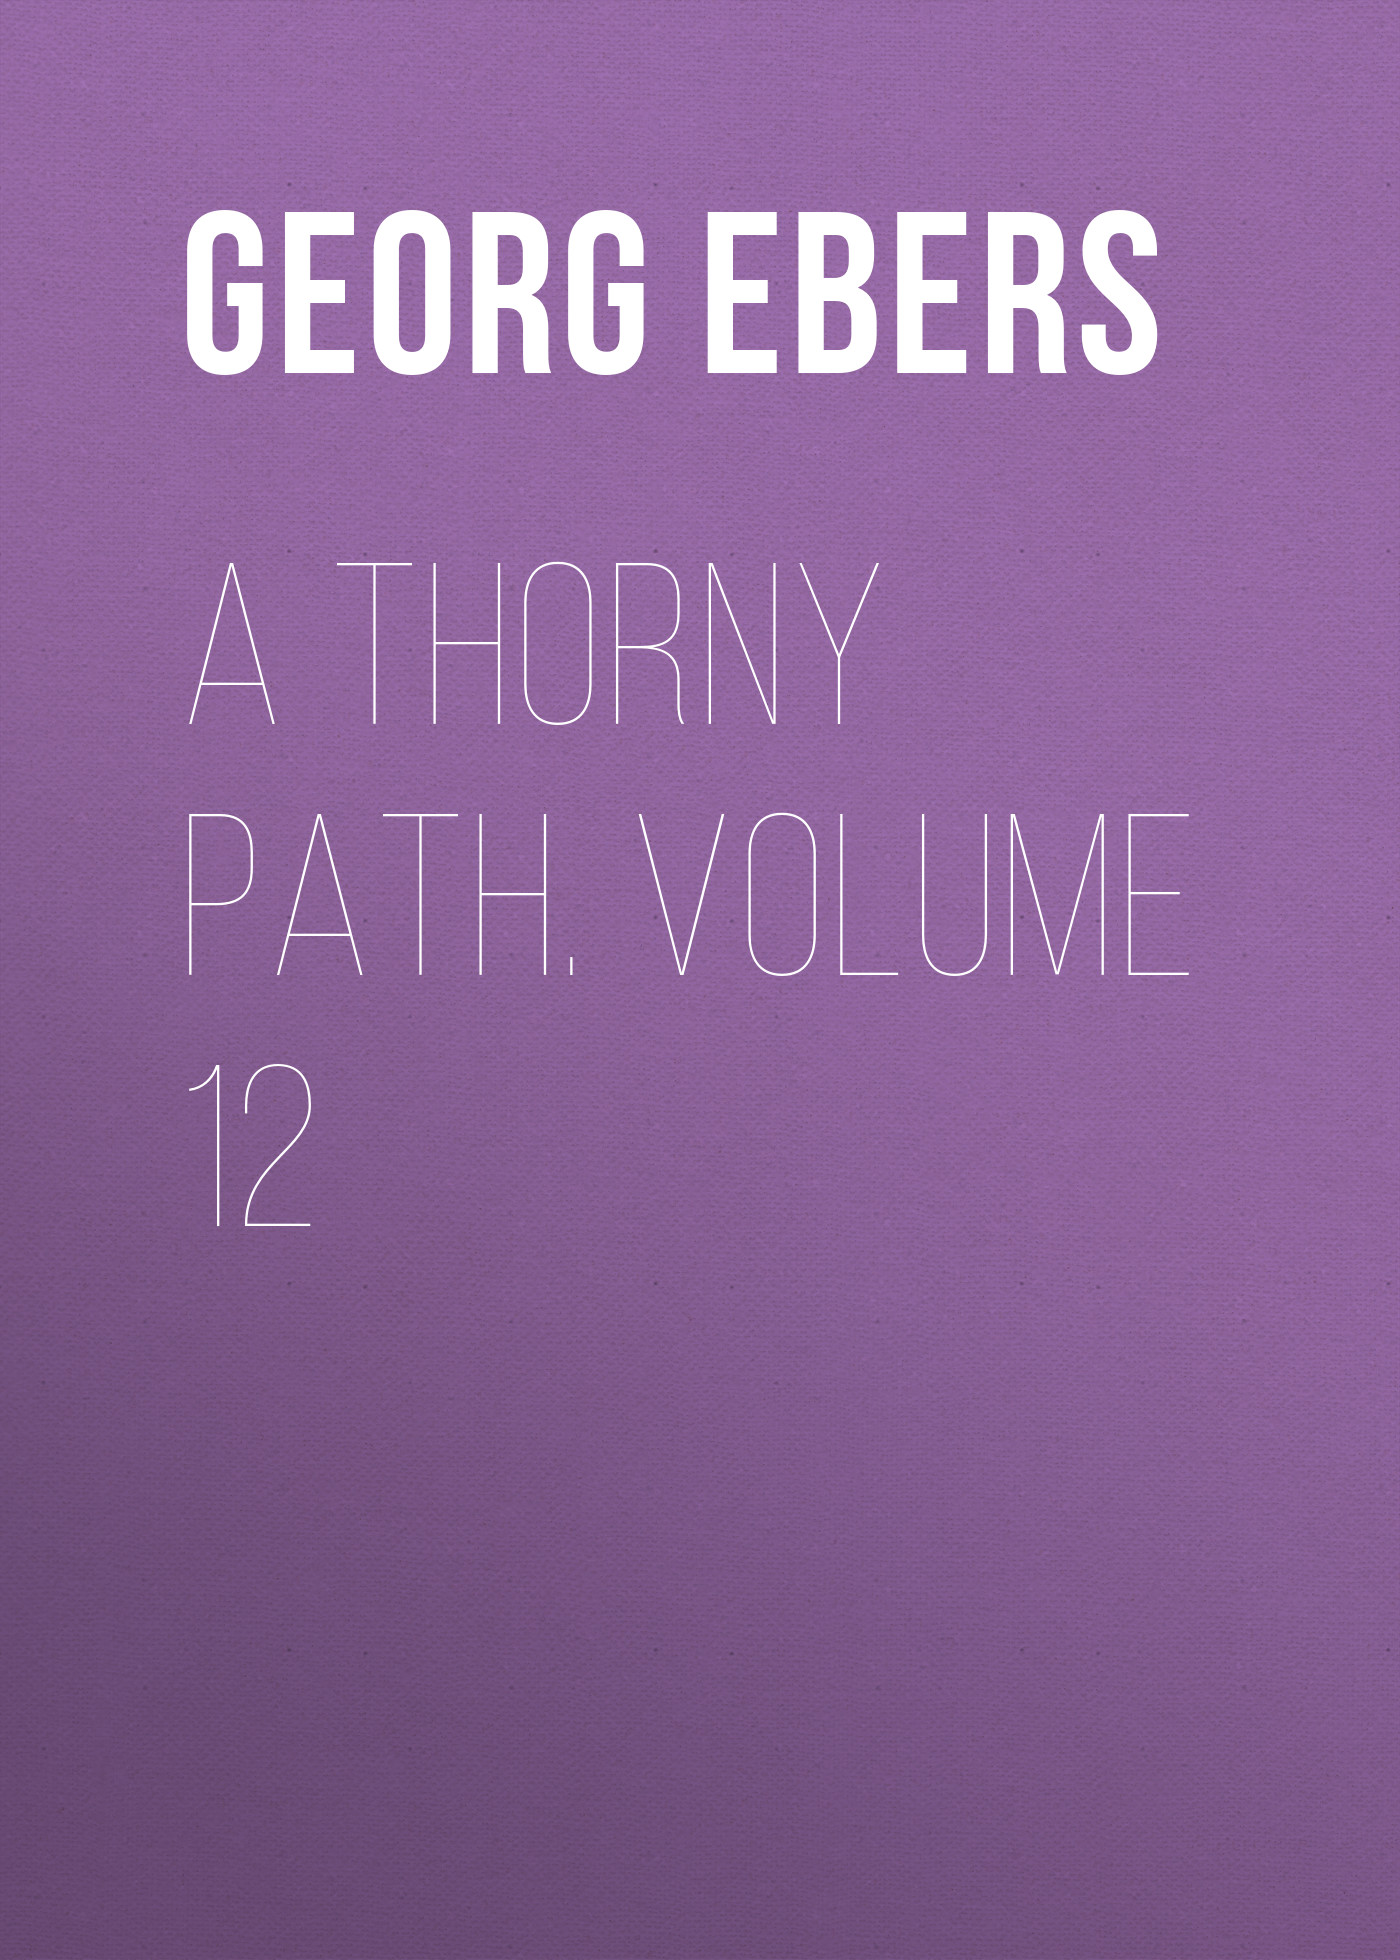 Georg Ebers A Thorny Path. Volume 12